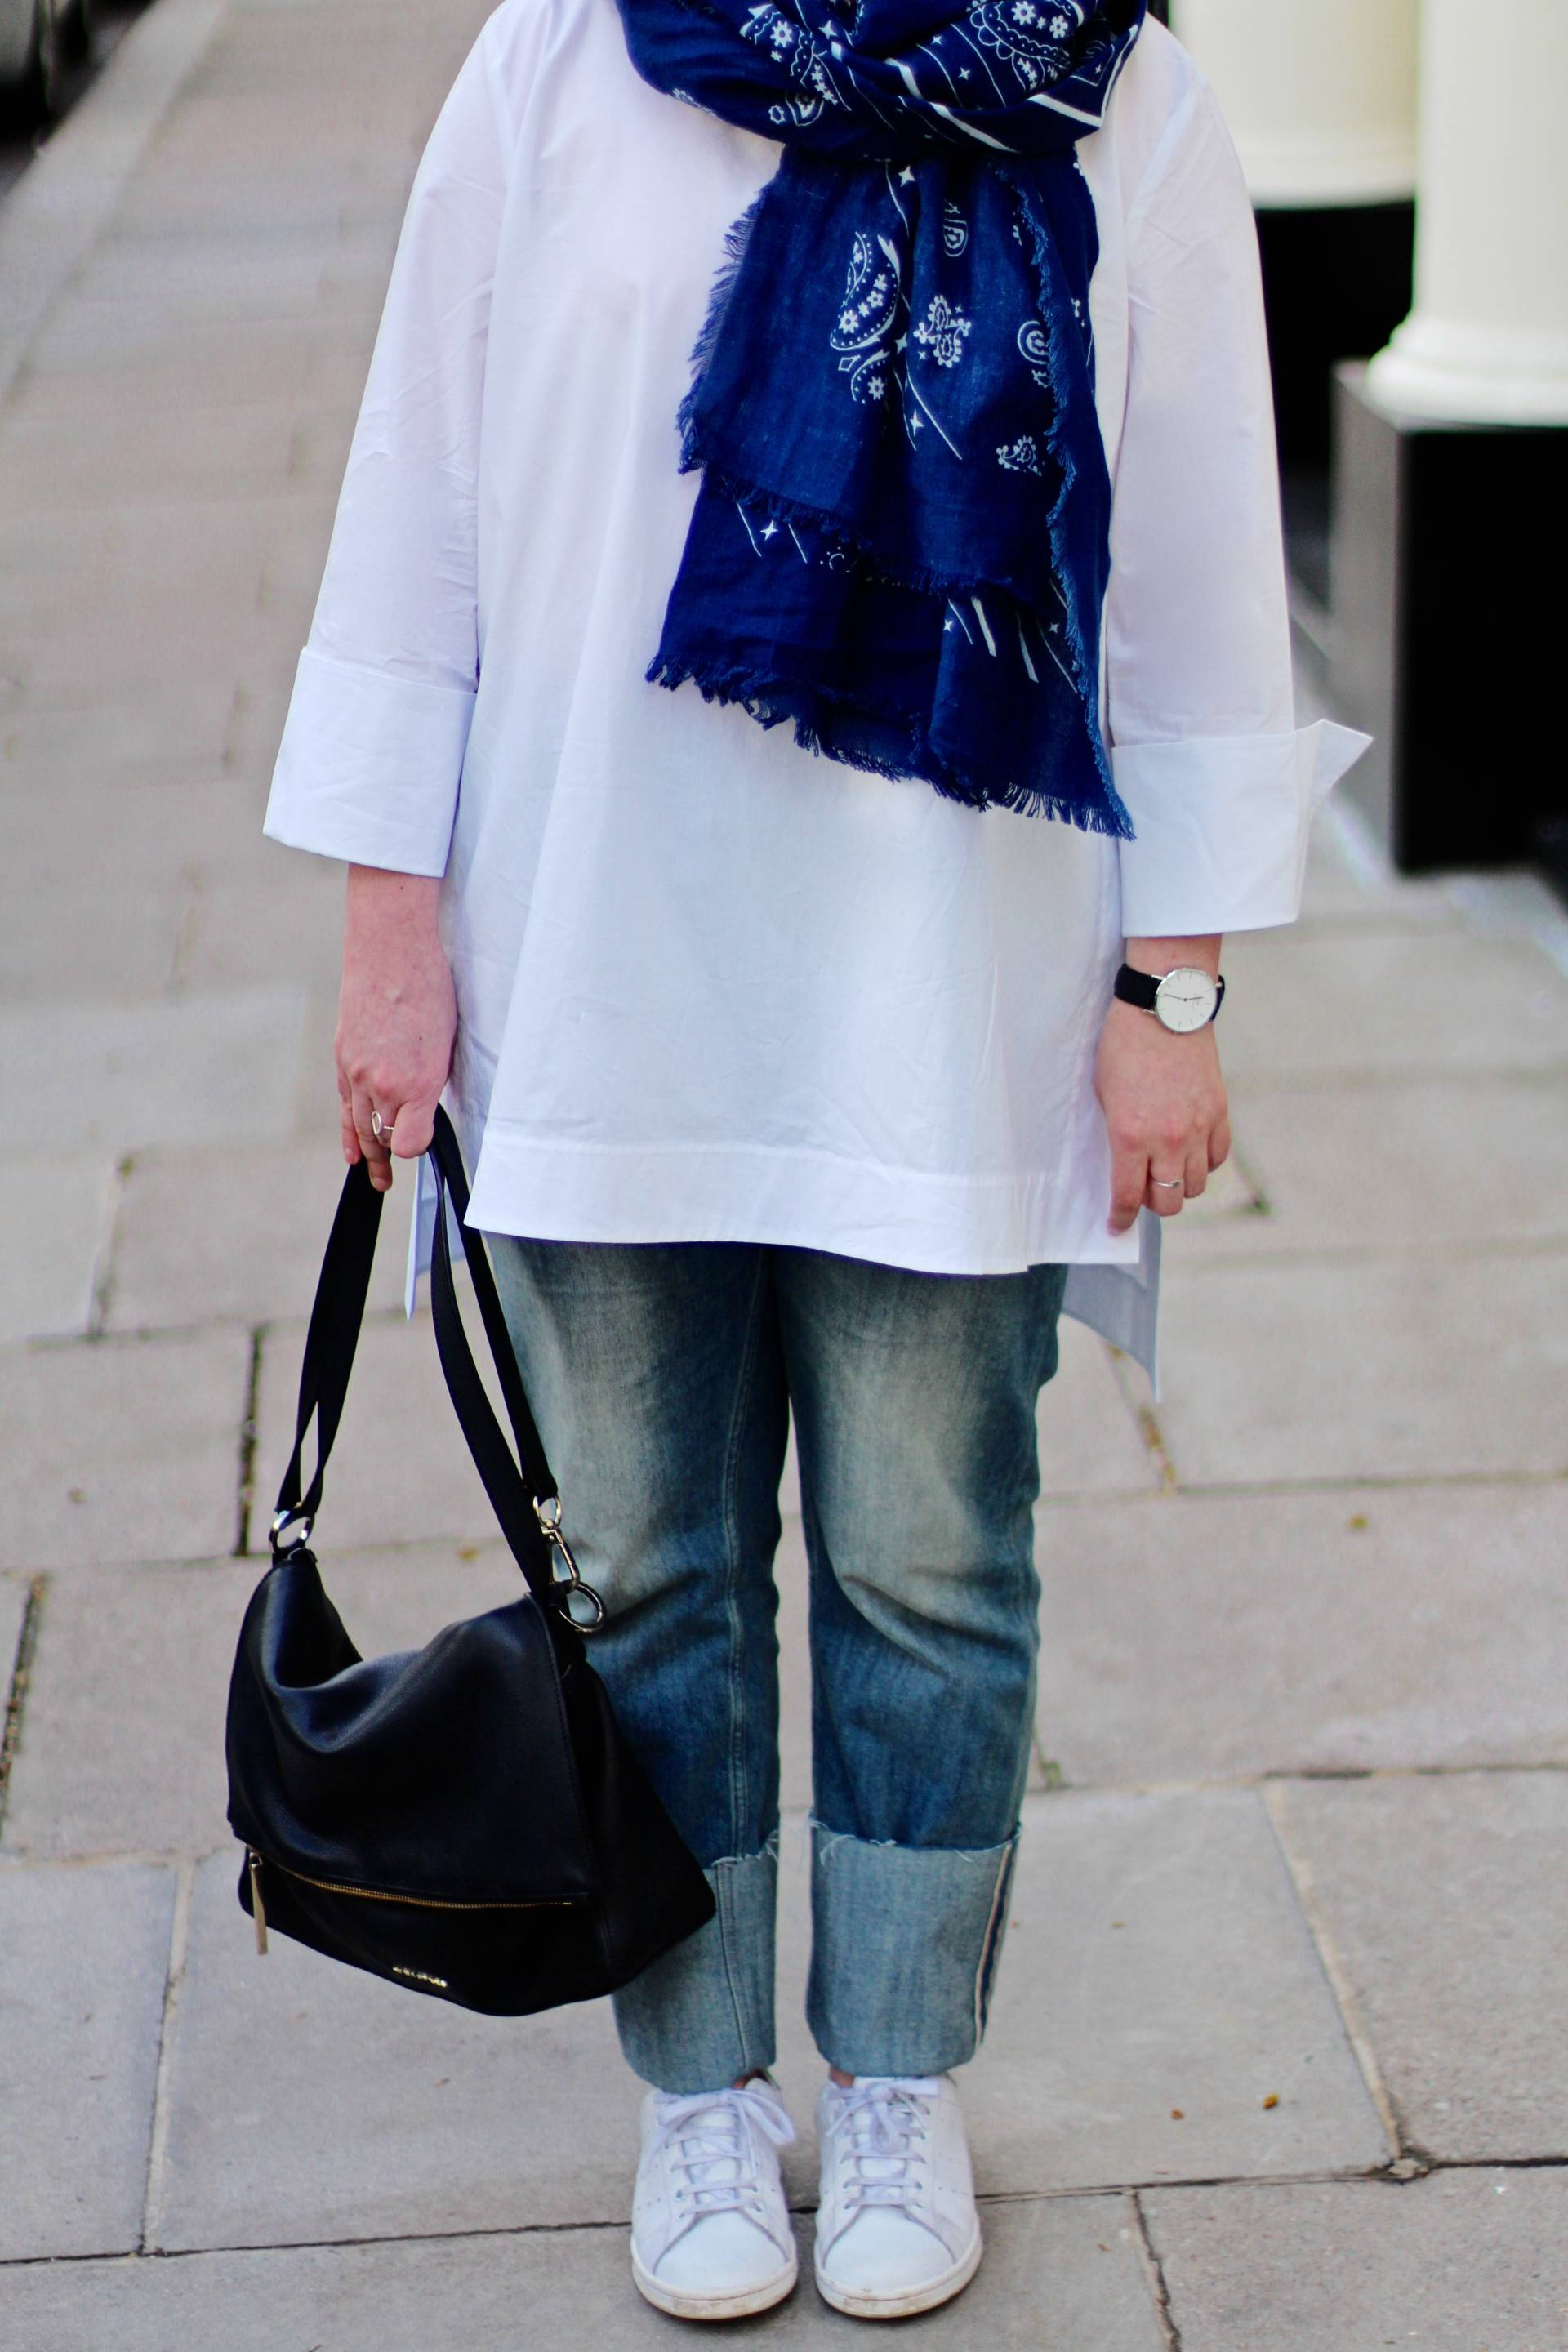 white cuffed cos shirt styled with MiiH phoebe cuff jeans and bandana scarf